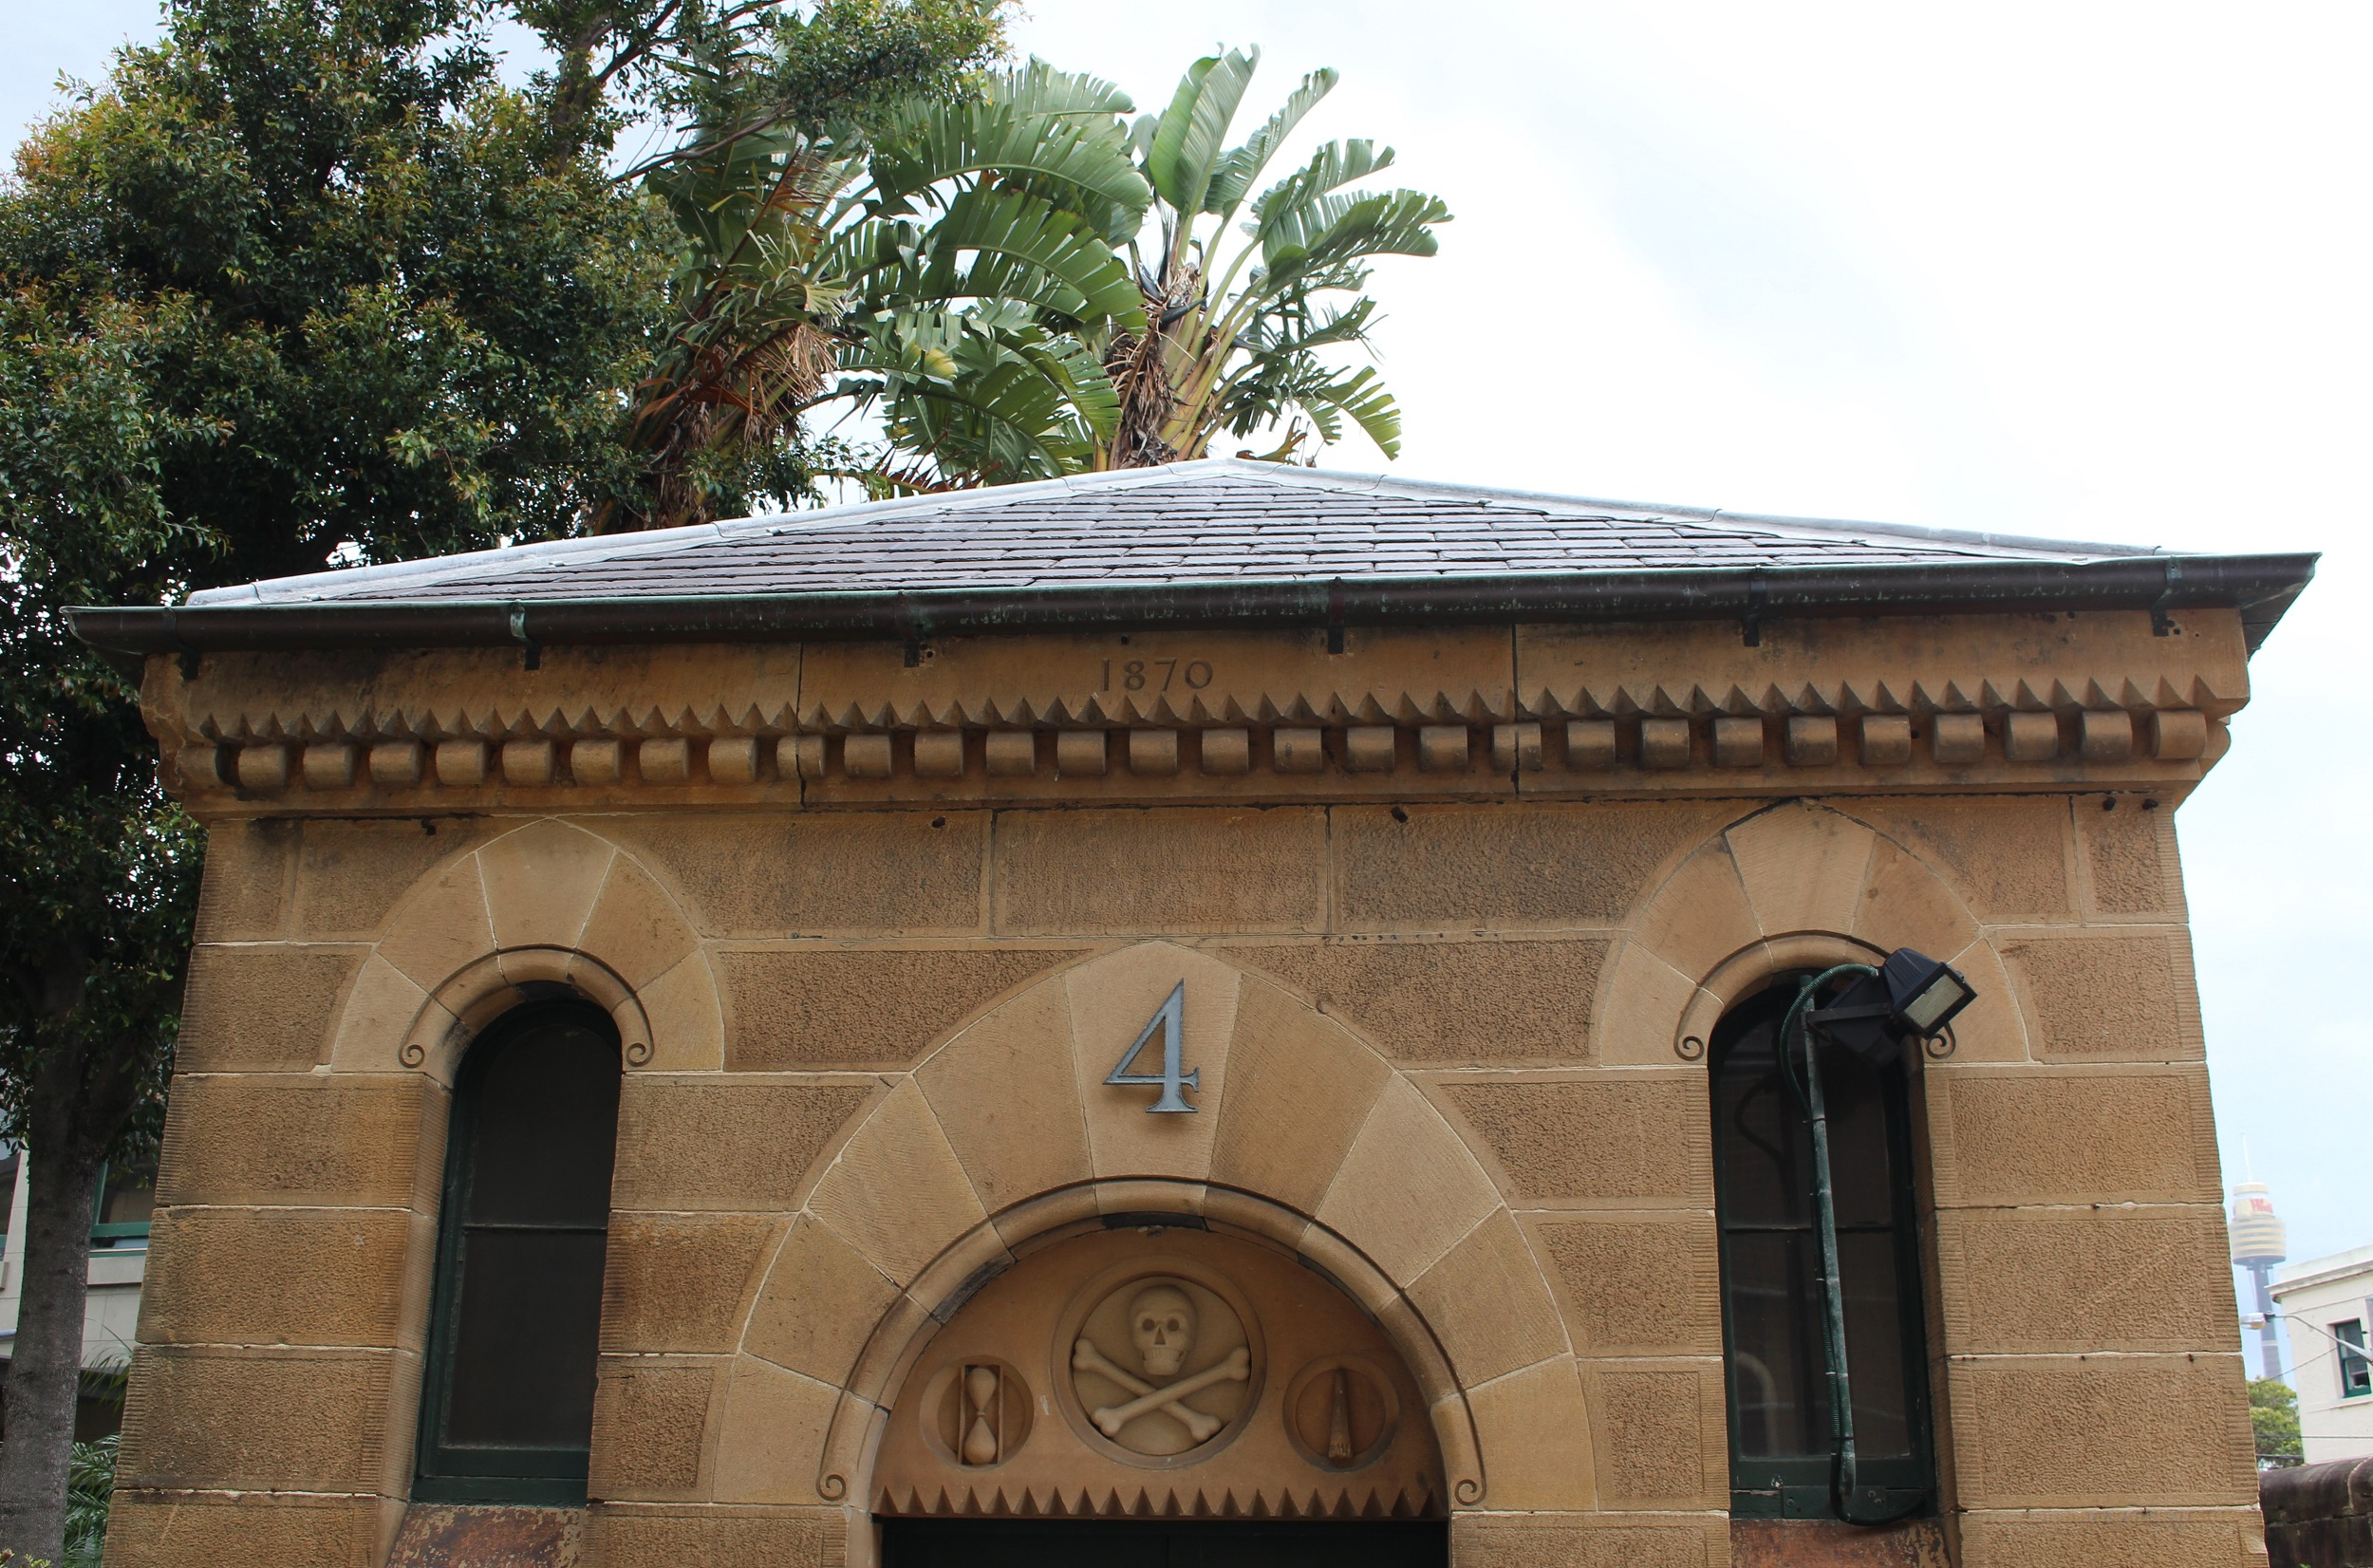 Sydney sandstone building at Sydney National Art School